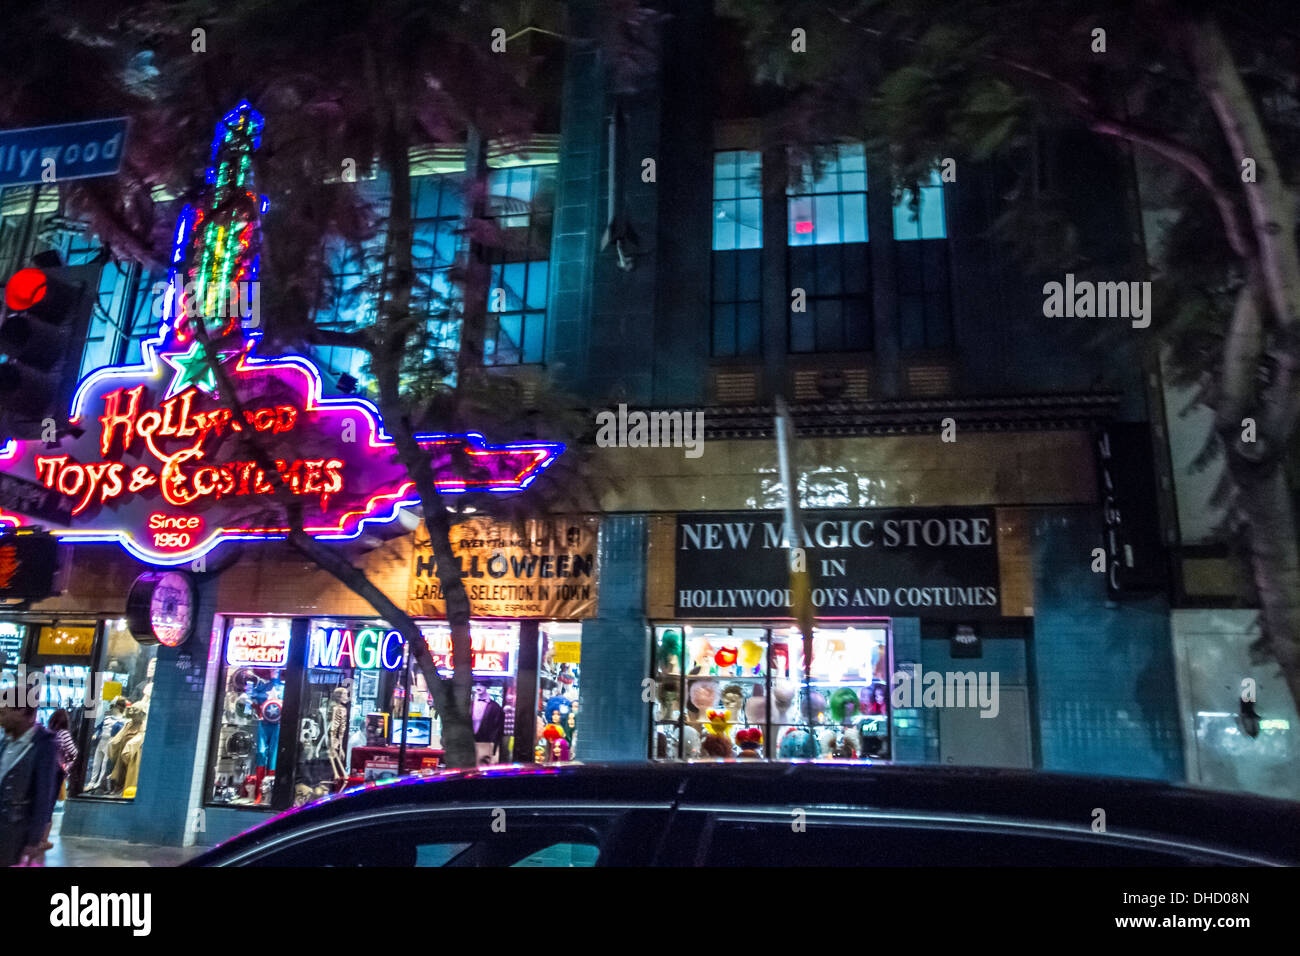 A costume toy and Magic store on Hollywood Blvd in Hollywood California  sc 1 st  Alamy & A costume toy and Magic store on Hollywood Blvd in Hollywood Stock ...